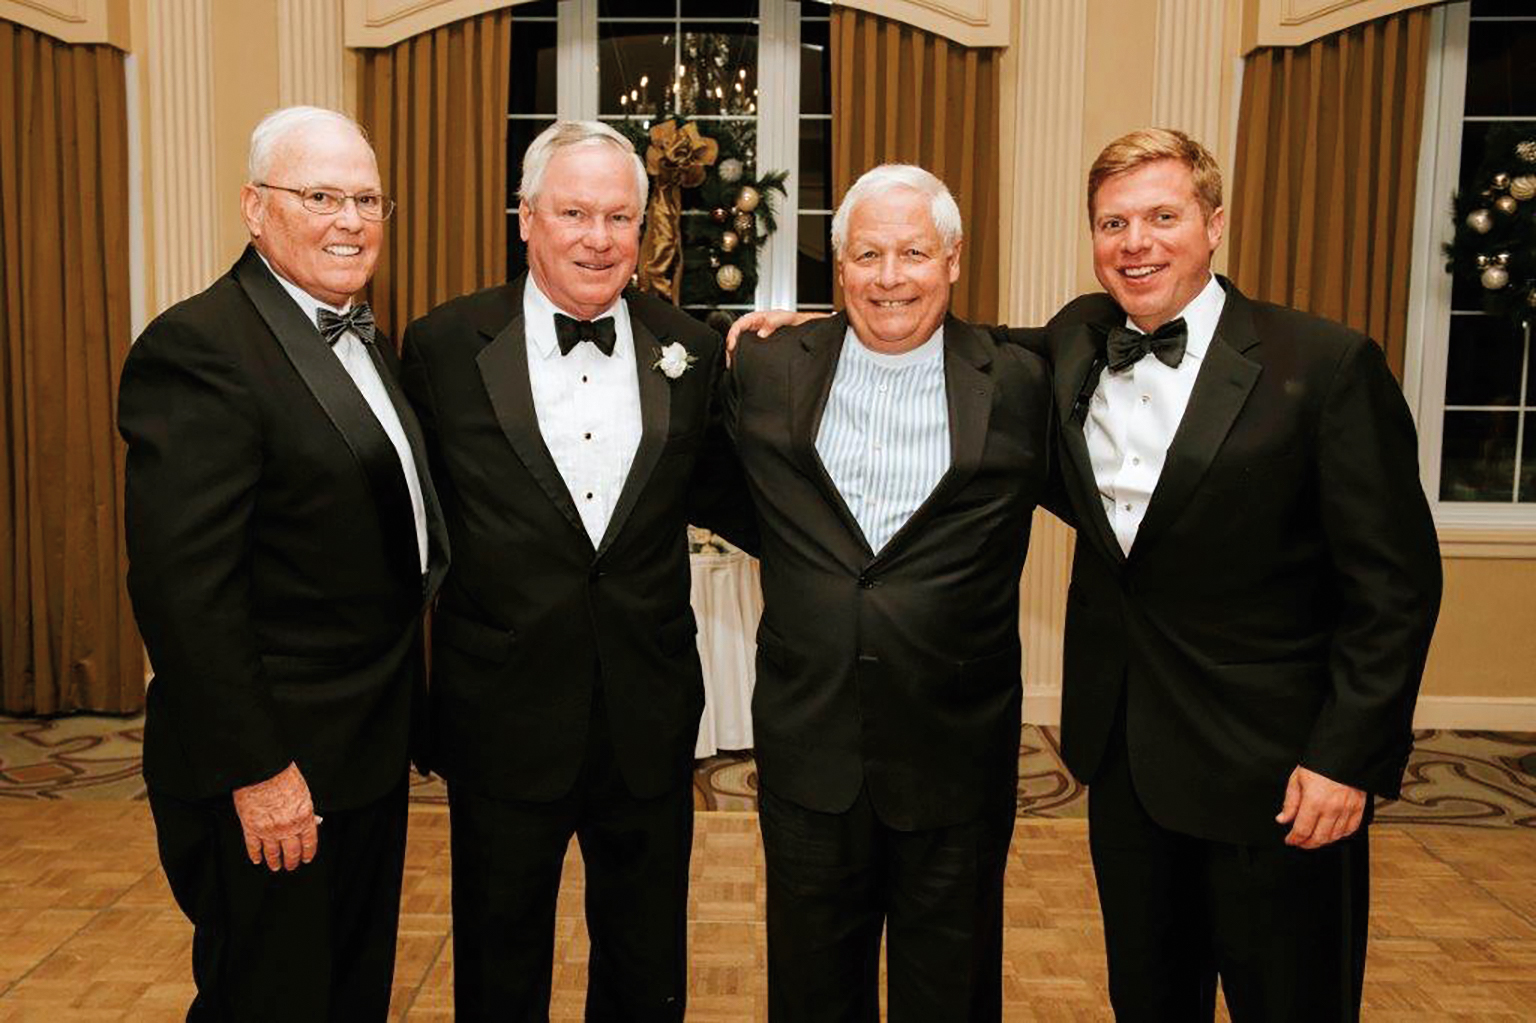 (L. to r.) Rick Billings '65, Harry Billings '67, John Branson '67, and Ed Ross '05 at the wedding of Harry's daughter in Boston.